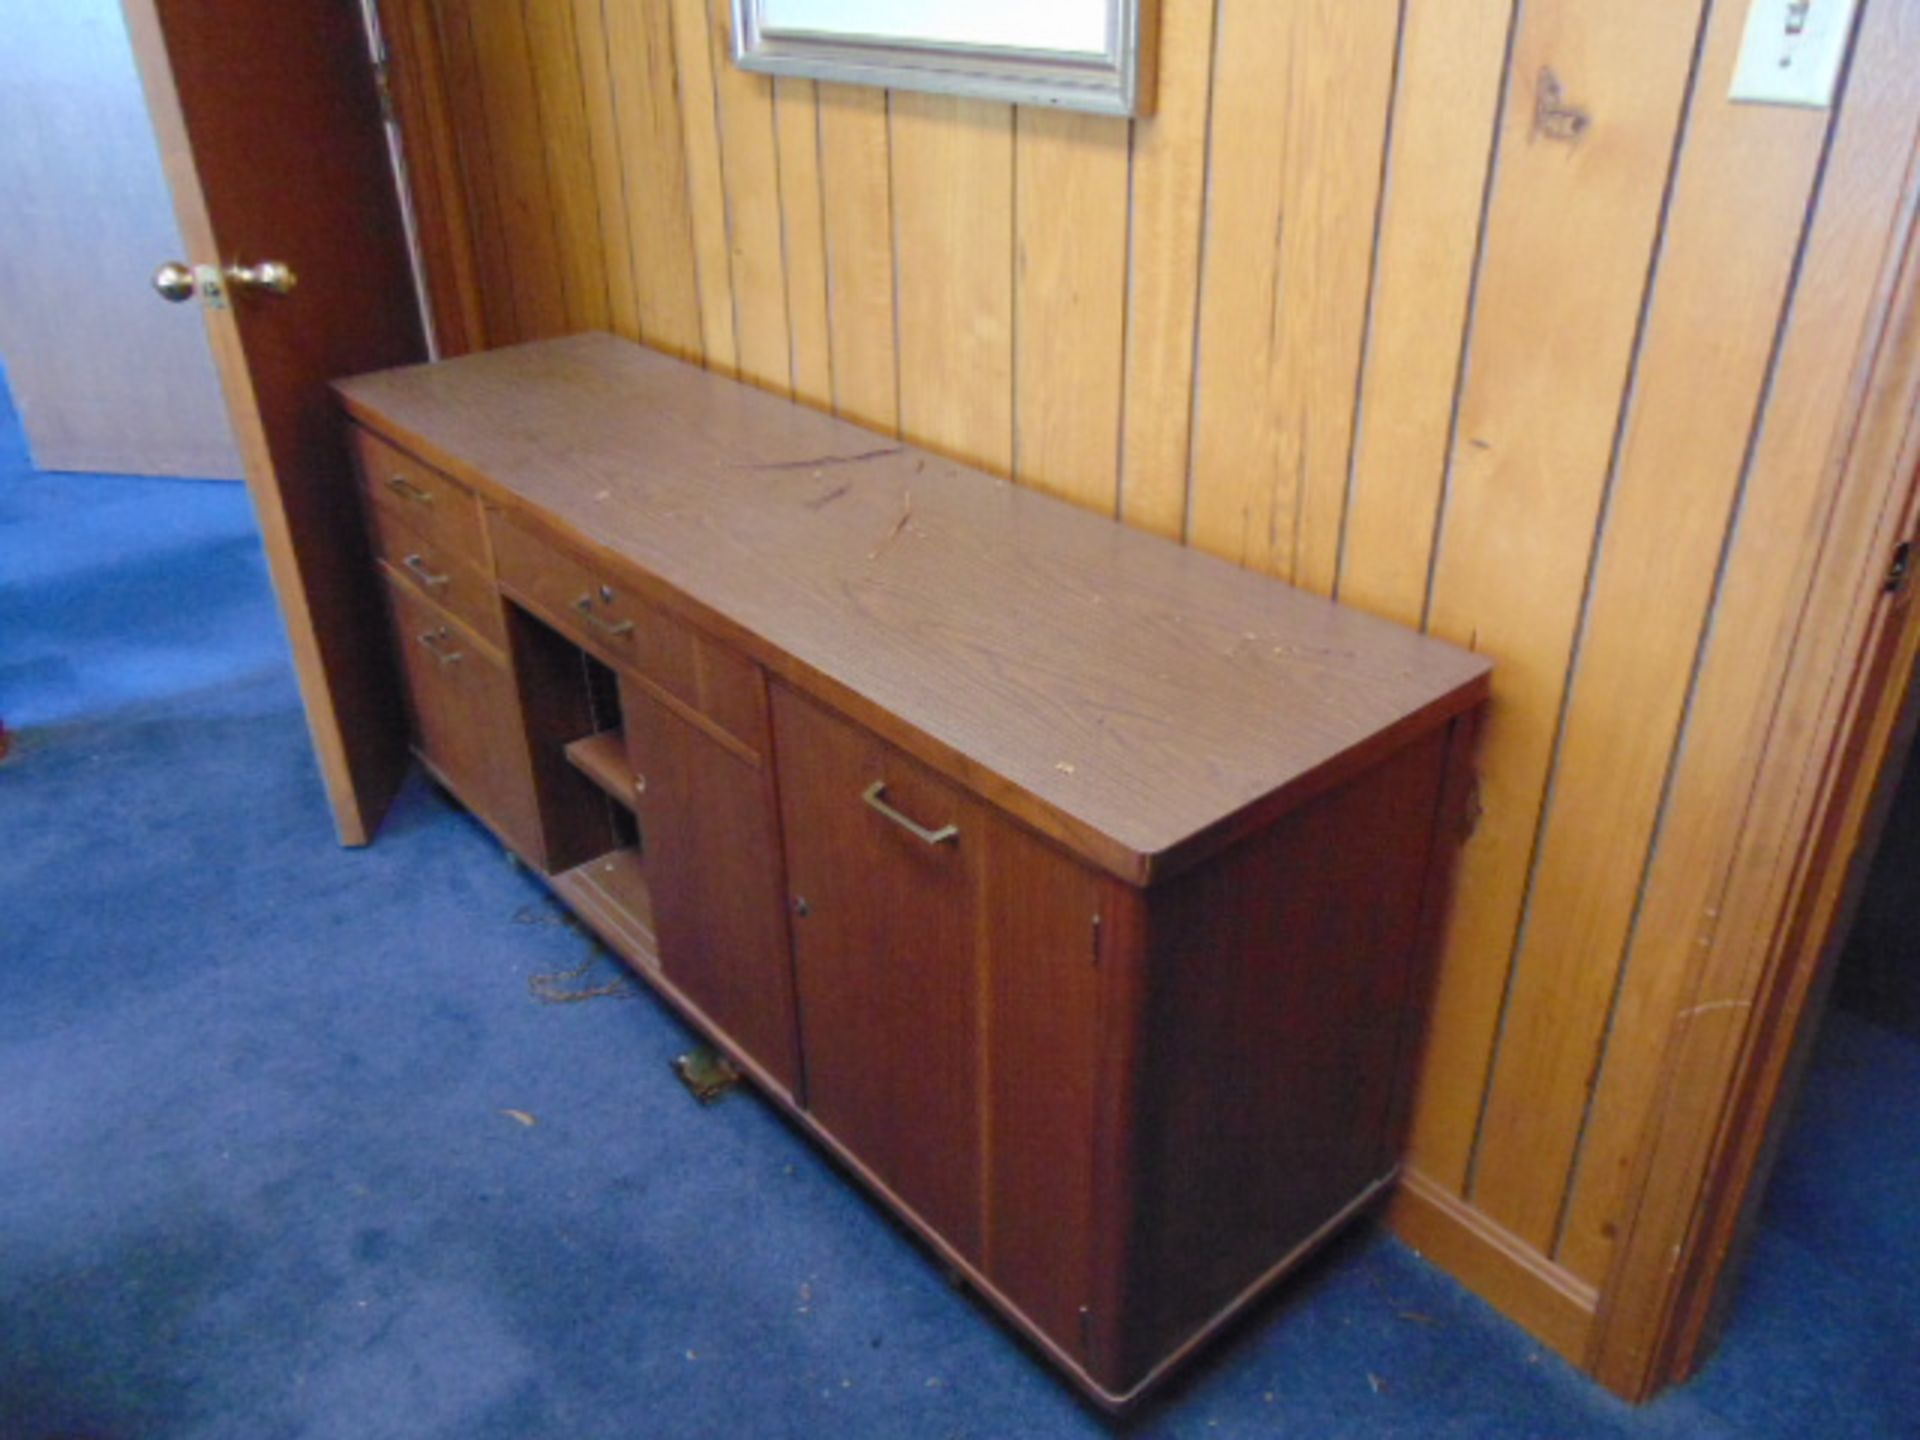 Lot 681 - LOT CONSISTING OF: oval table, credenza, bookcase, (2) end tables & (8) chairs (located upstairs)